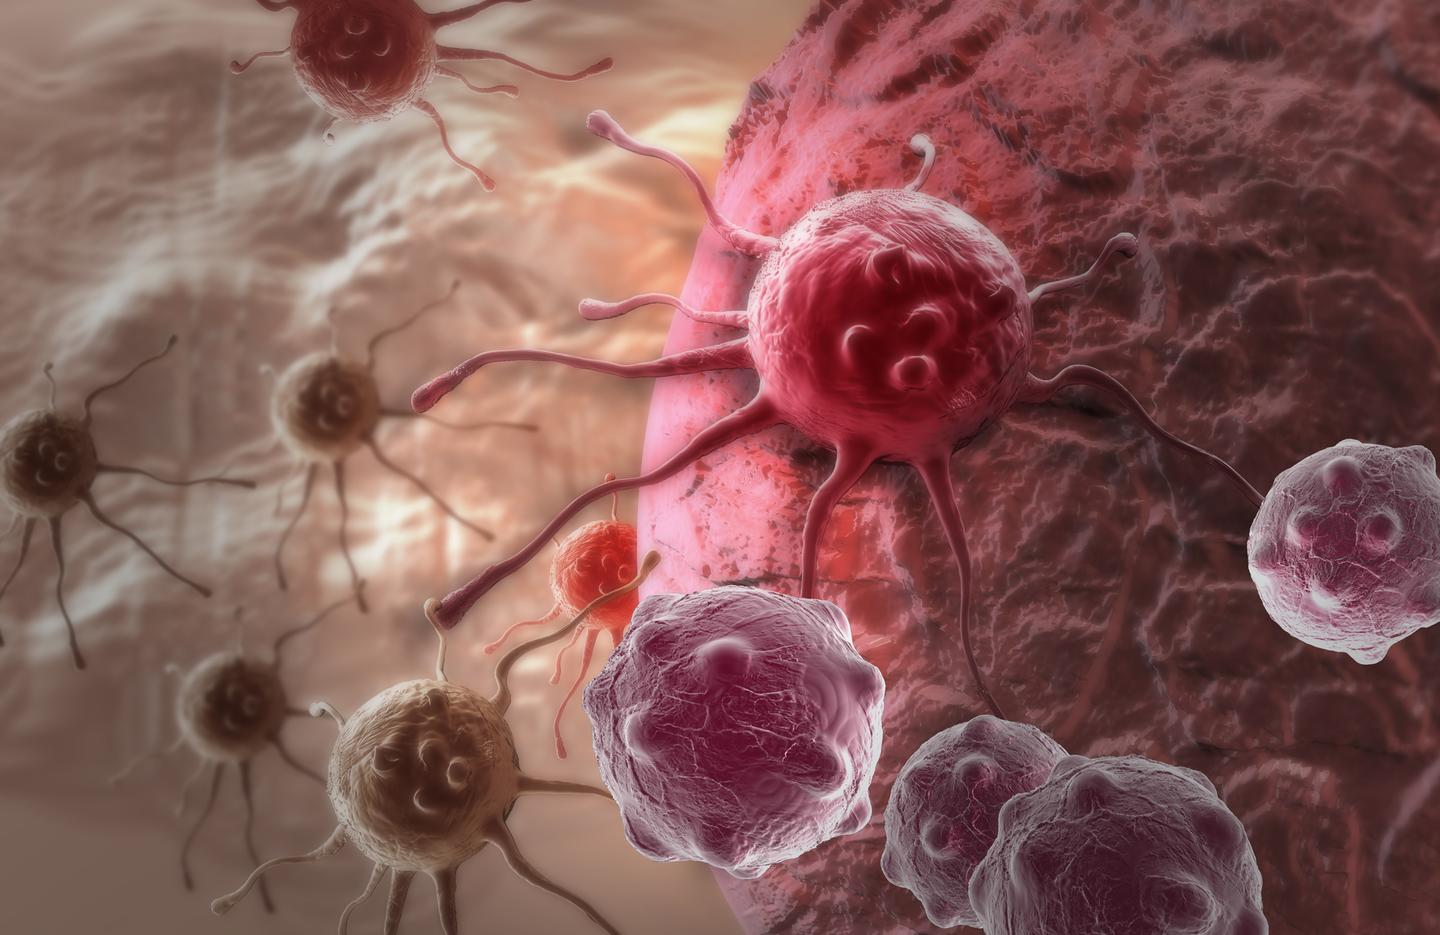 Researchers have designed a new drug delivery system that targets only cancer cells